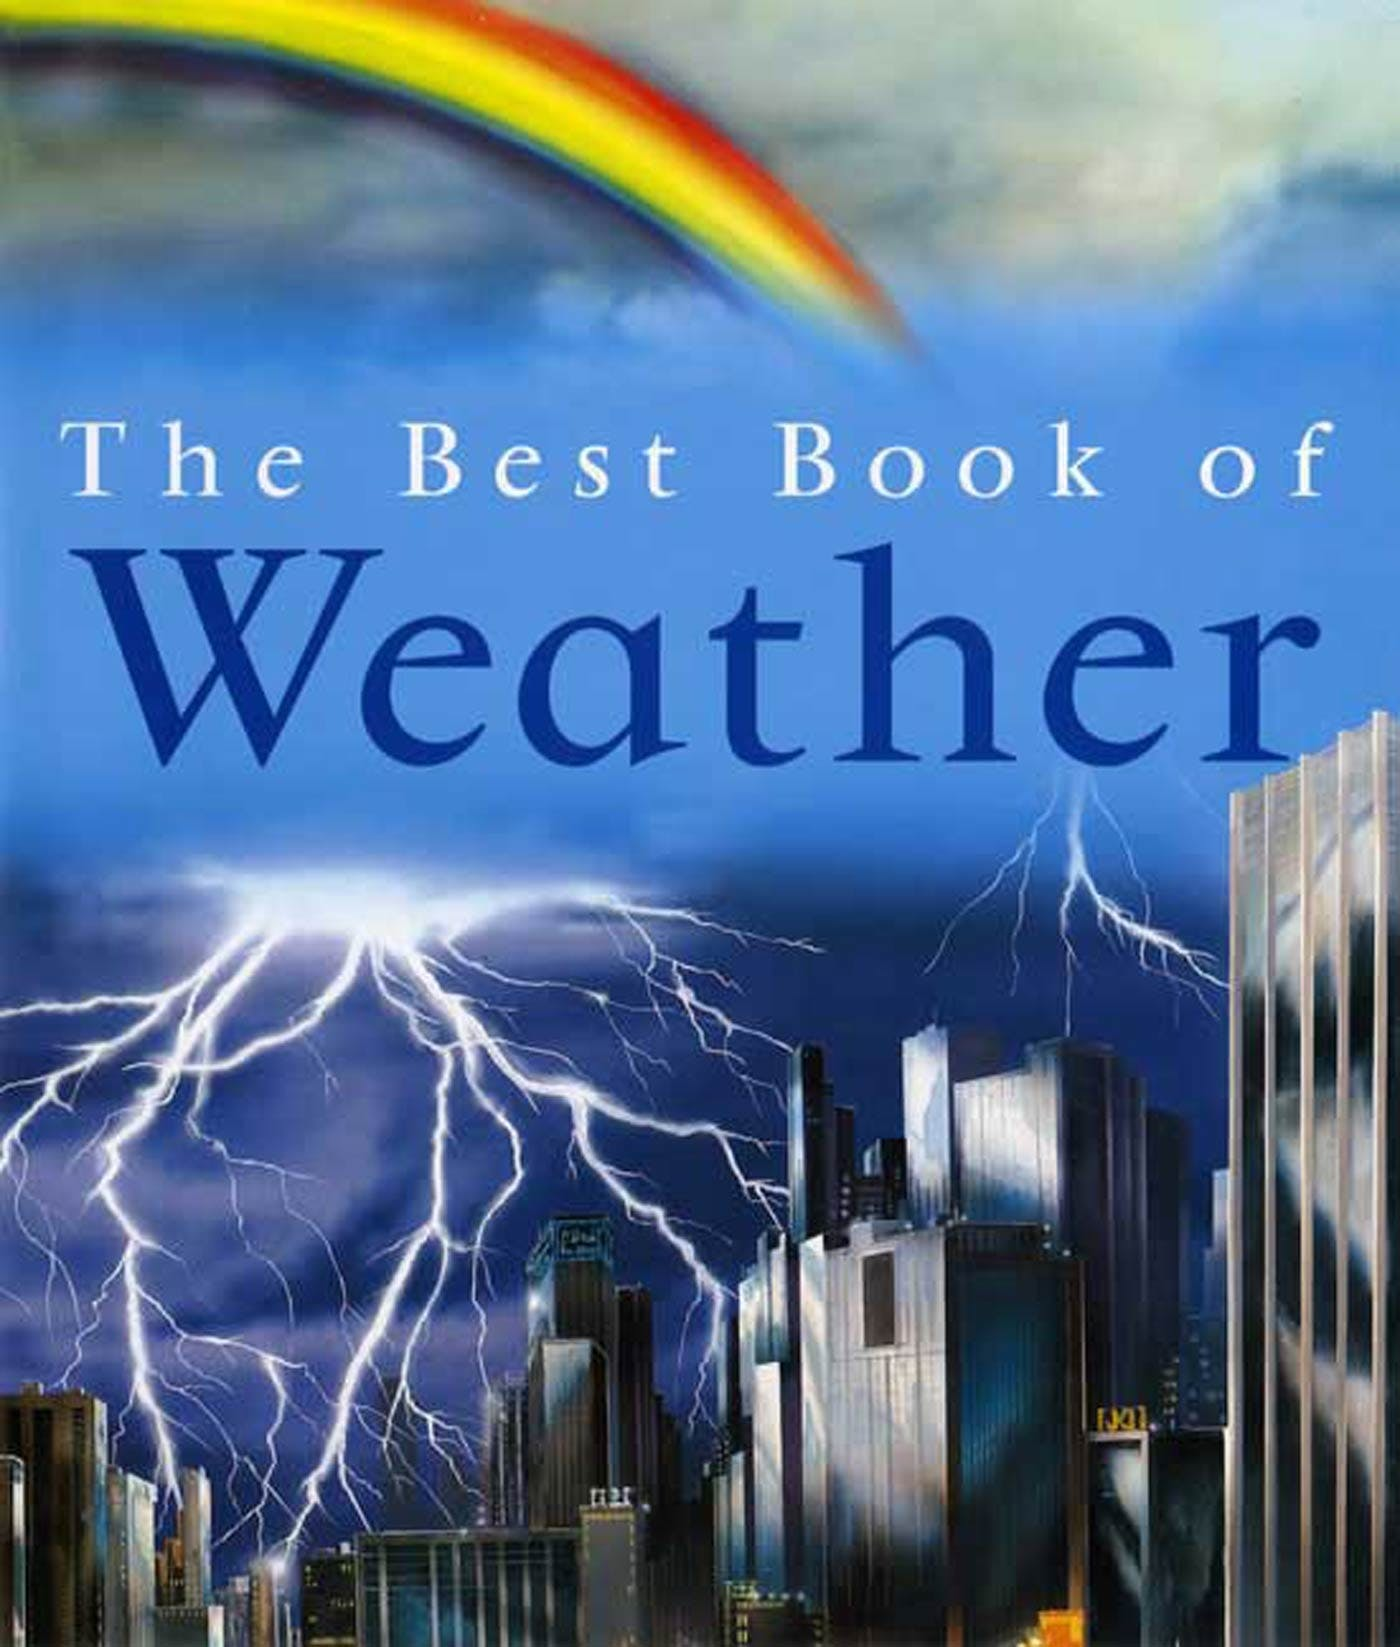 Image of The Best Book of Weather